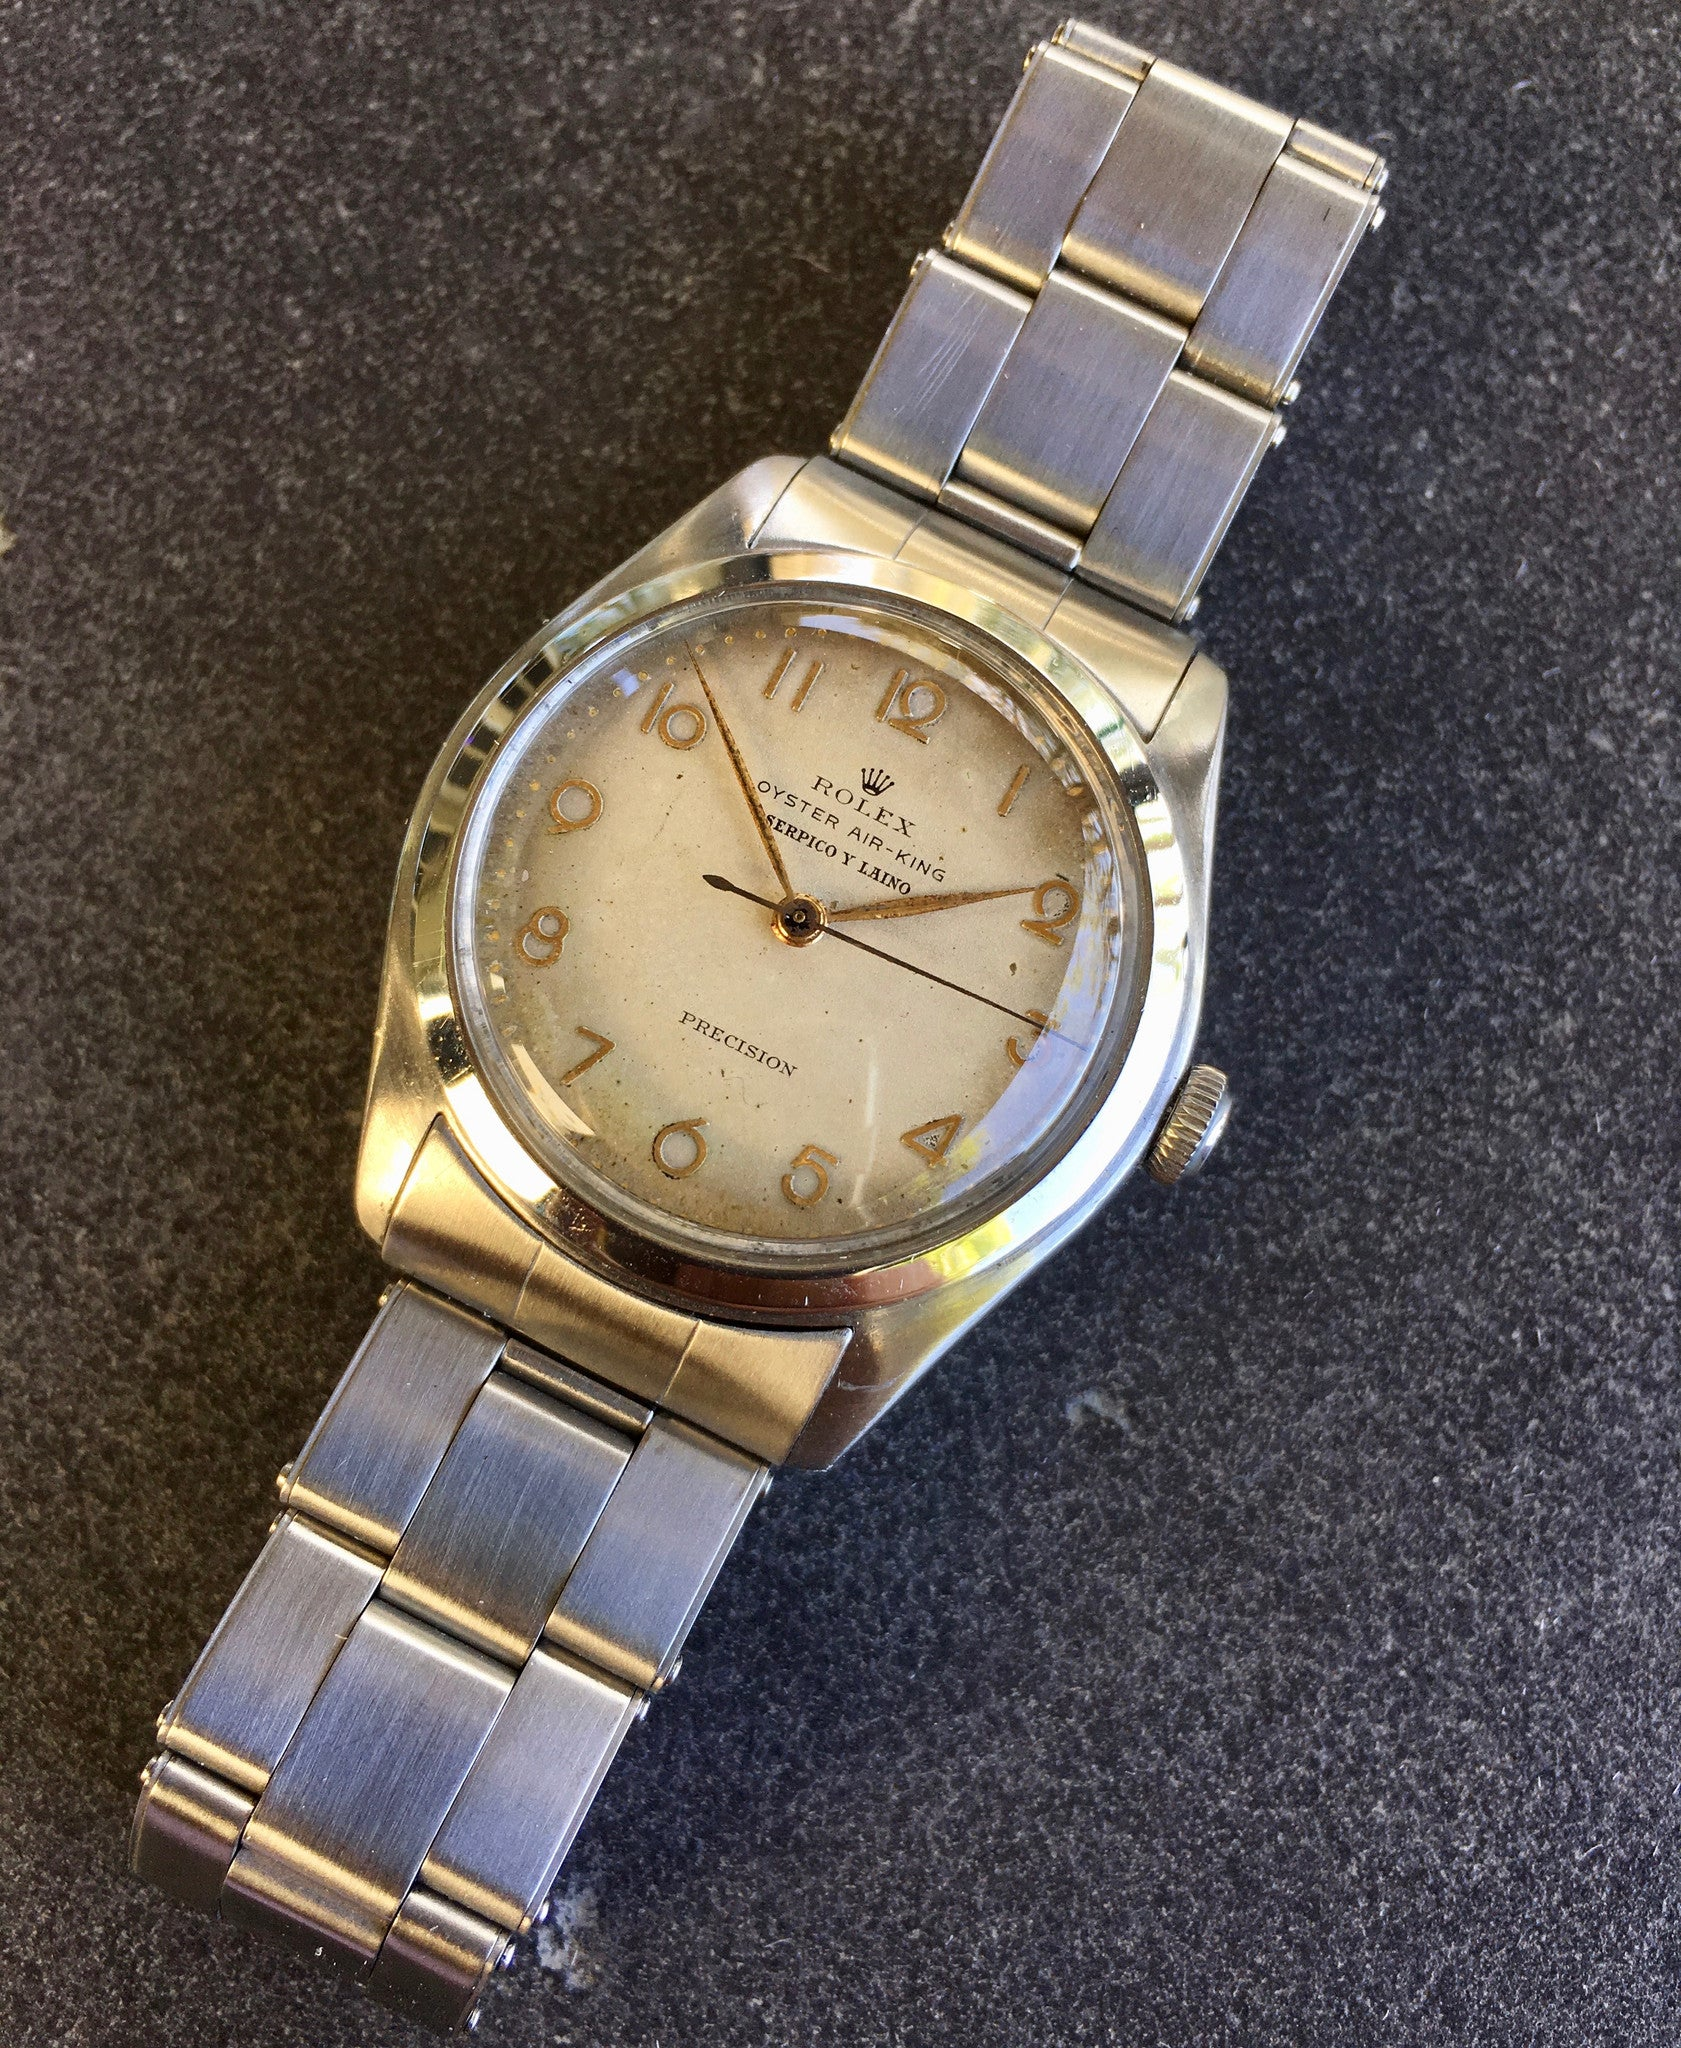 Vintage rolex oyster air king serpico y laino 4499 precision 1946 st hashtag watch company for Vintage rolex oyster